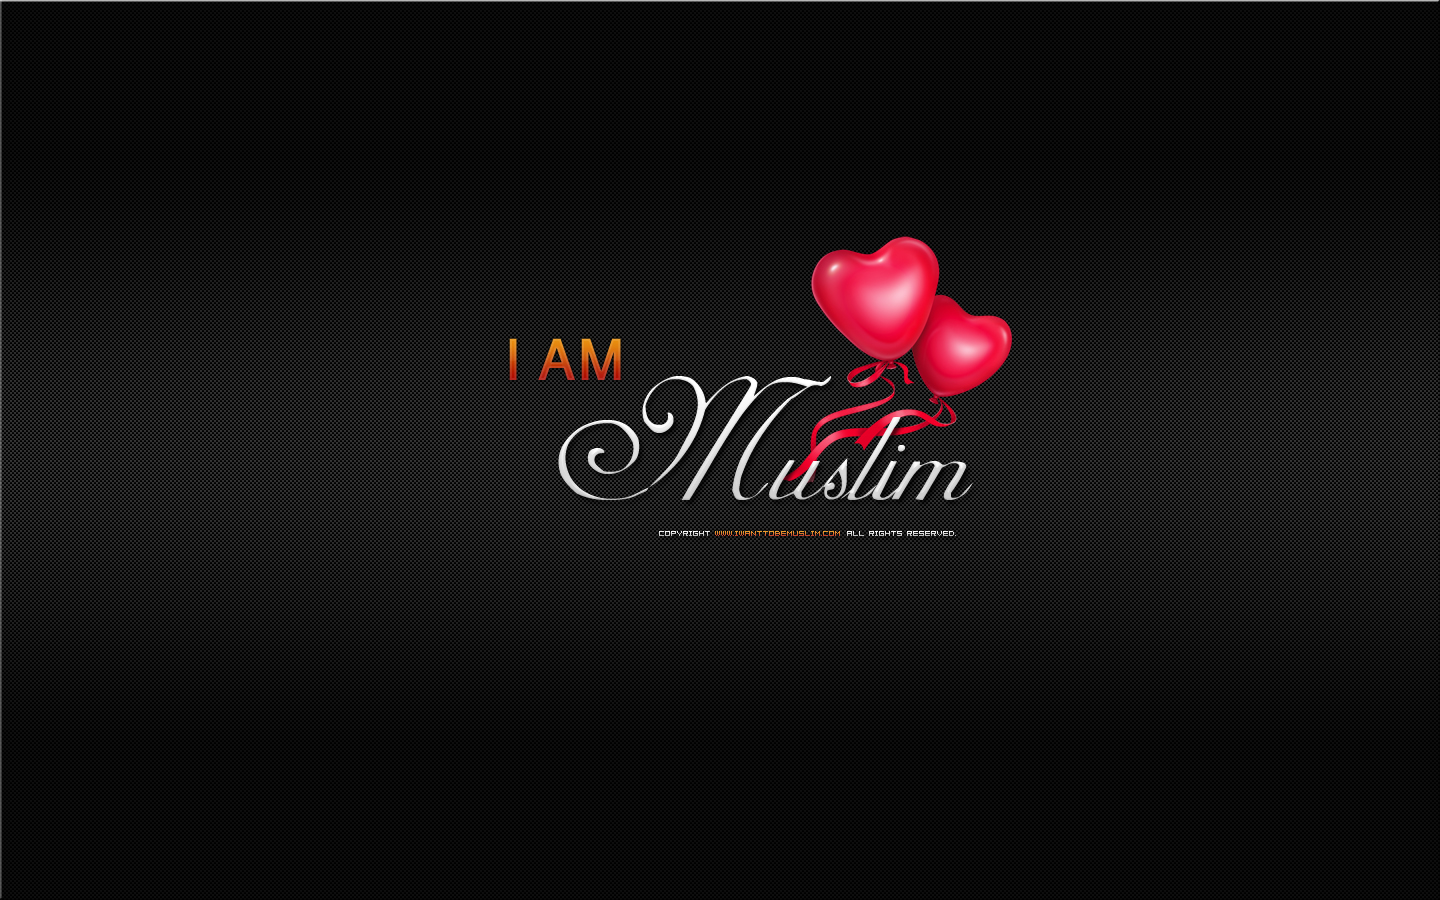 http://4.bp.blogspot.com/-HZyzhvW6dFE/UNkzmjNfpxI/AAAAAAAANCw/Z1bn5rZjjG0/s1600/hd_islamic_wallpaper_by_i_want_to_be_muslim-d3hxztt.jpg